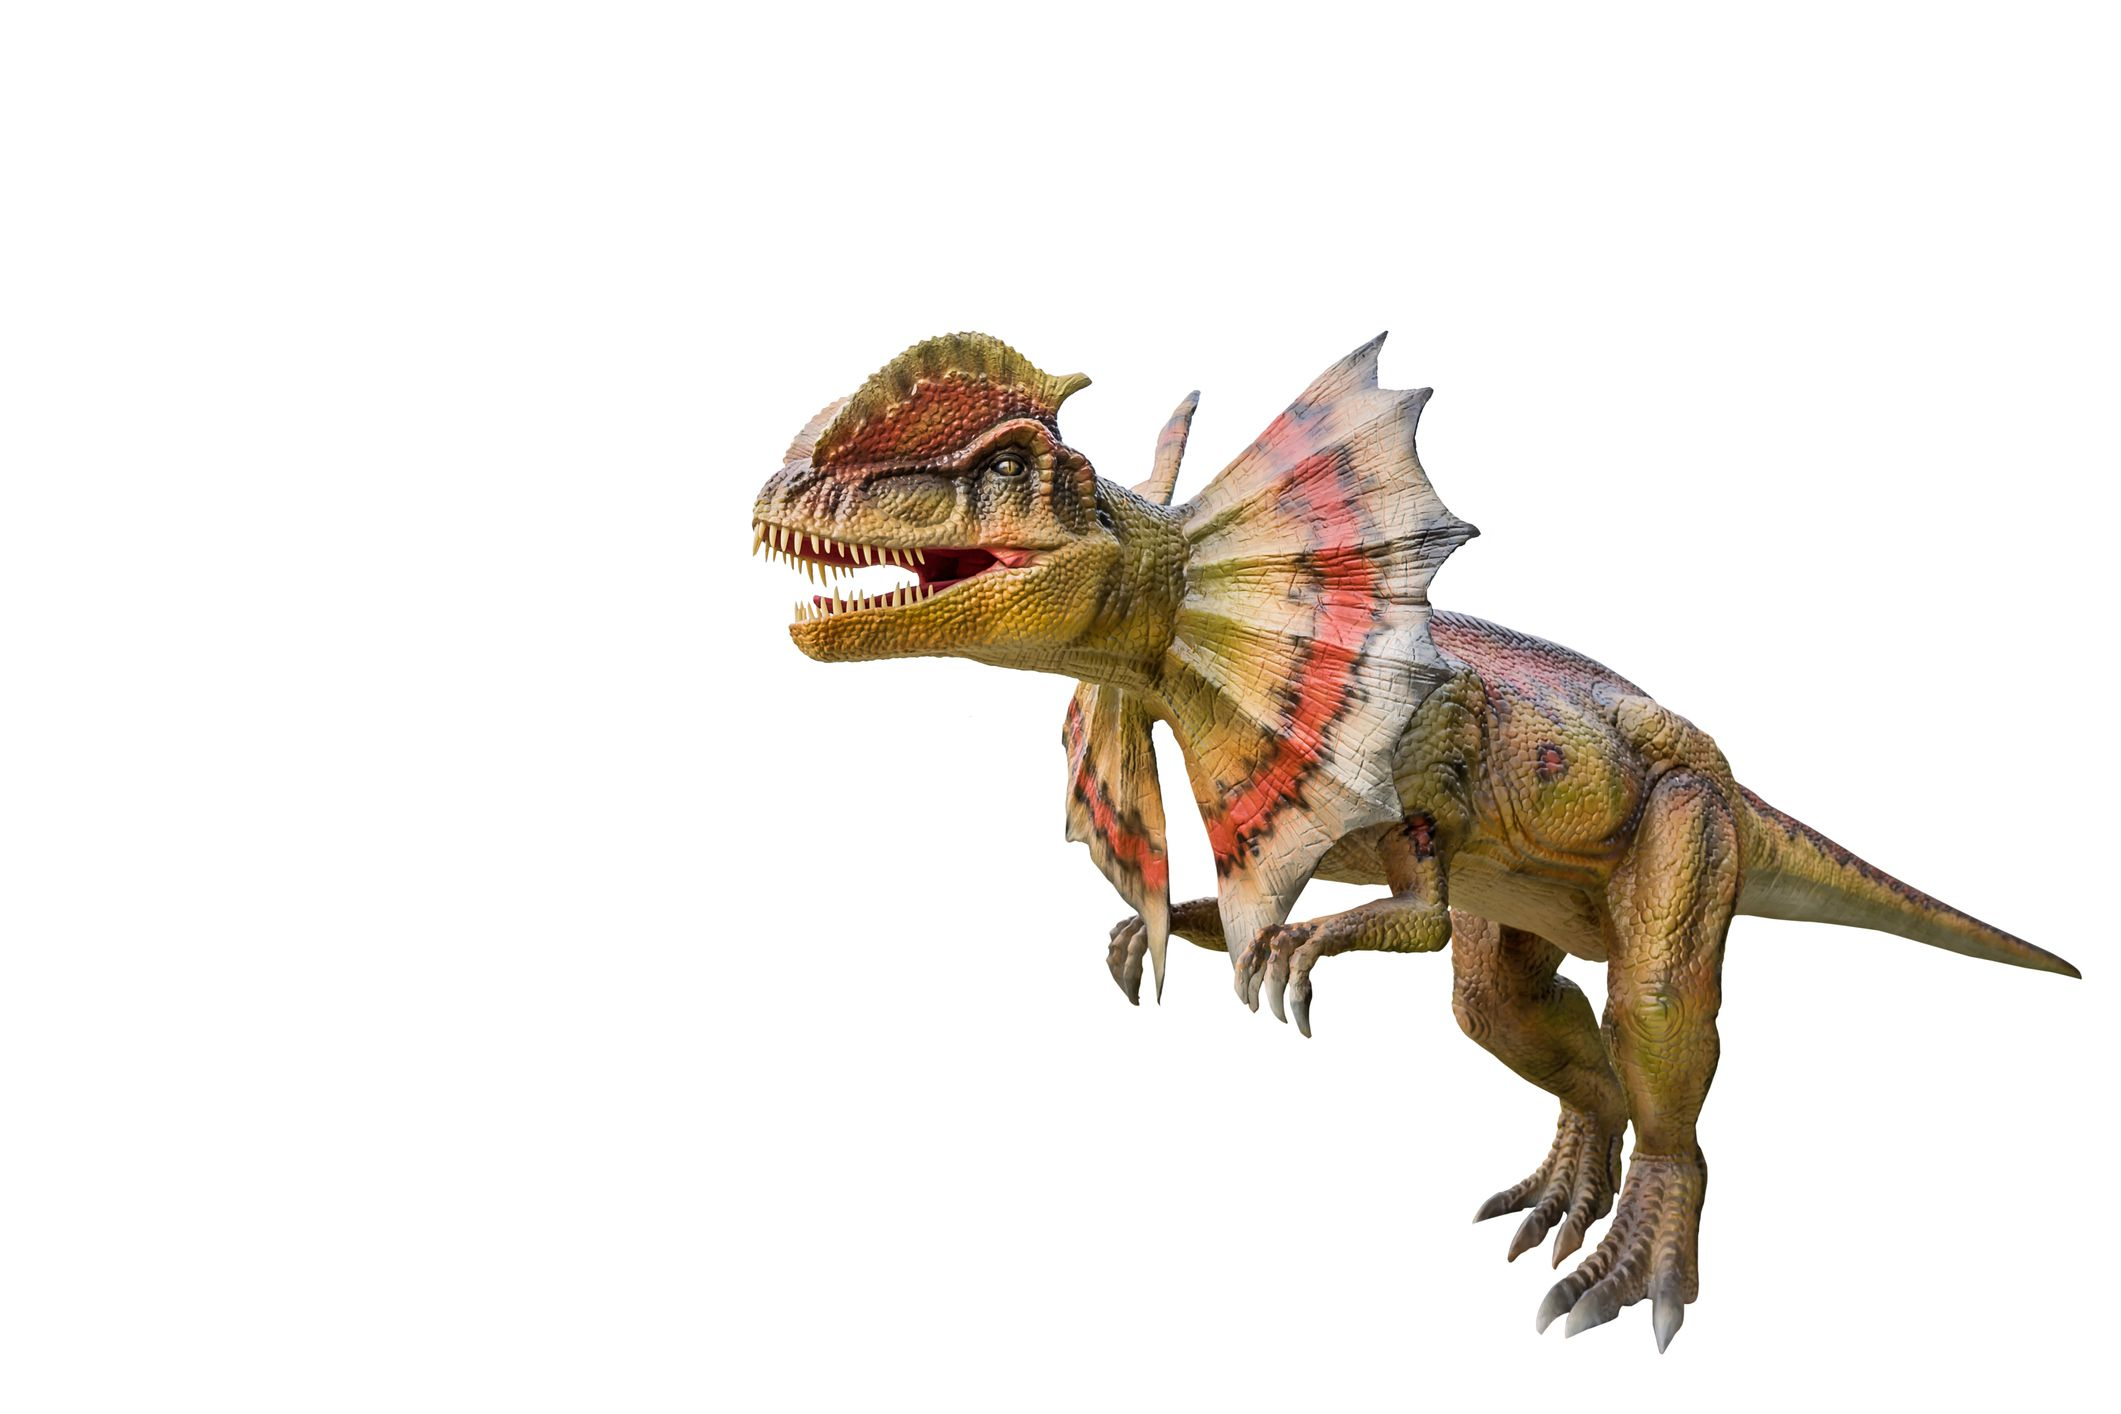 rendering of dilophosaurus with crest on white background